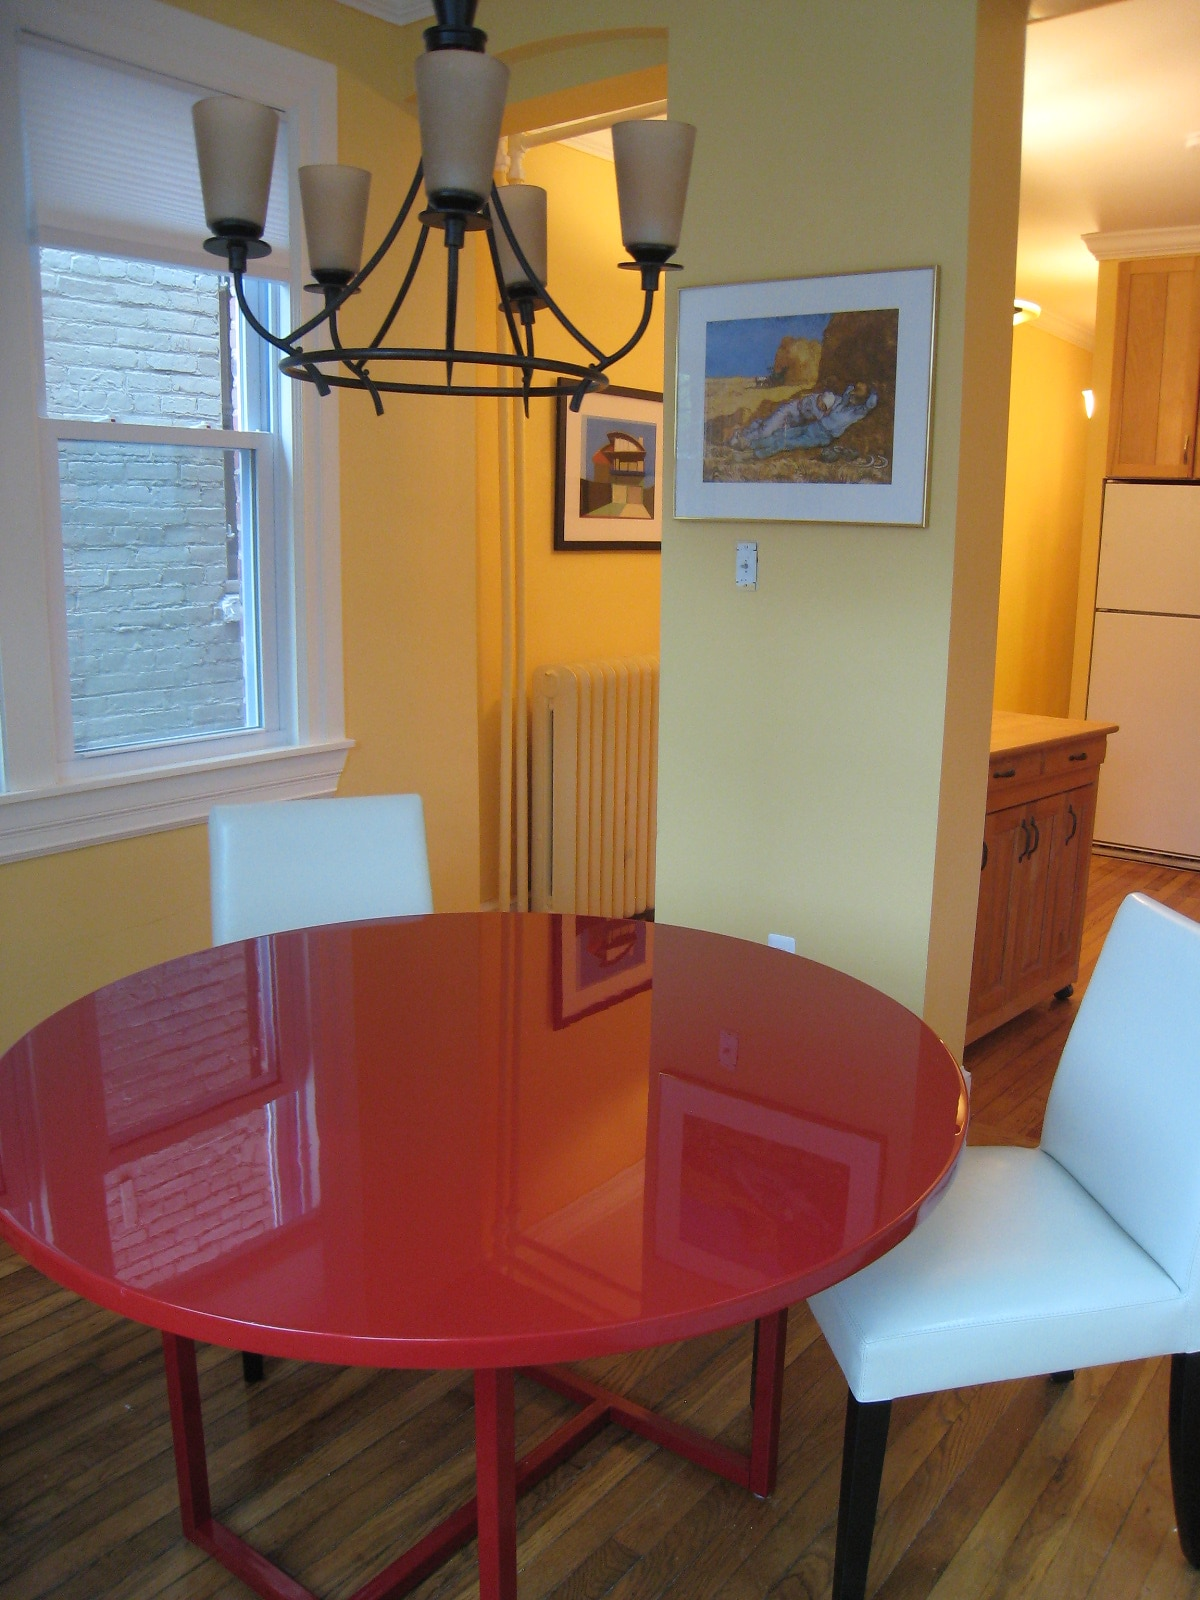 Dining room is surrounded by windows and has a view and door to the patio.